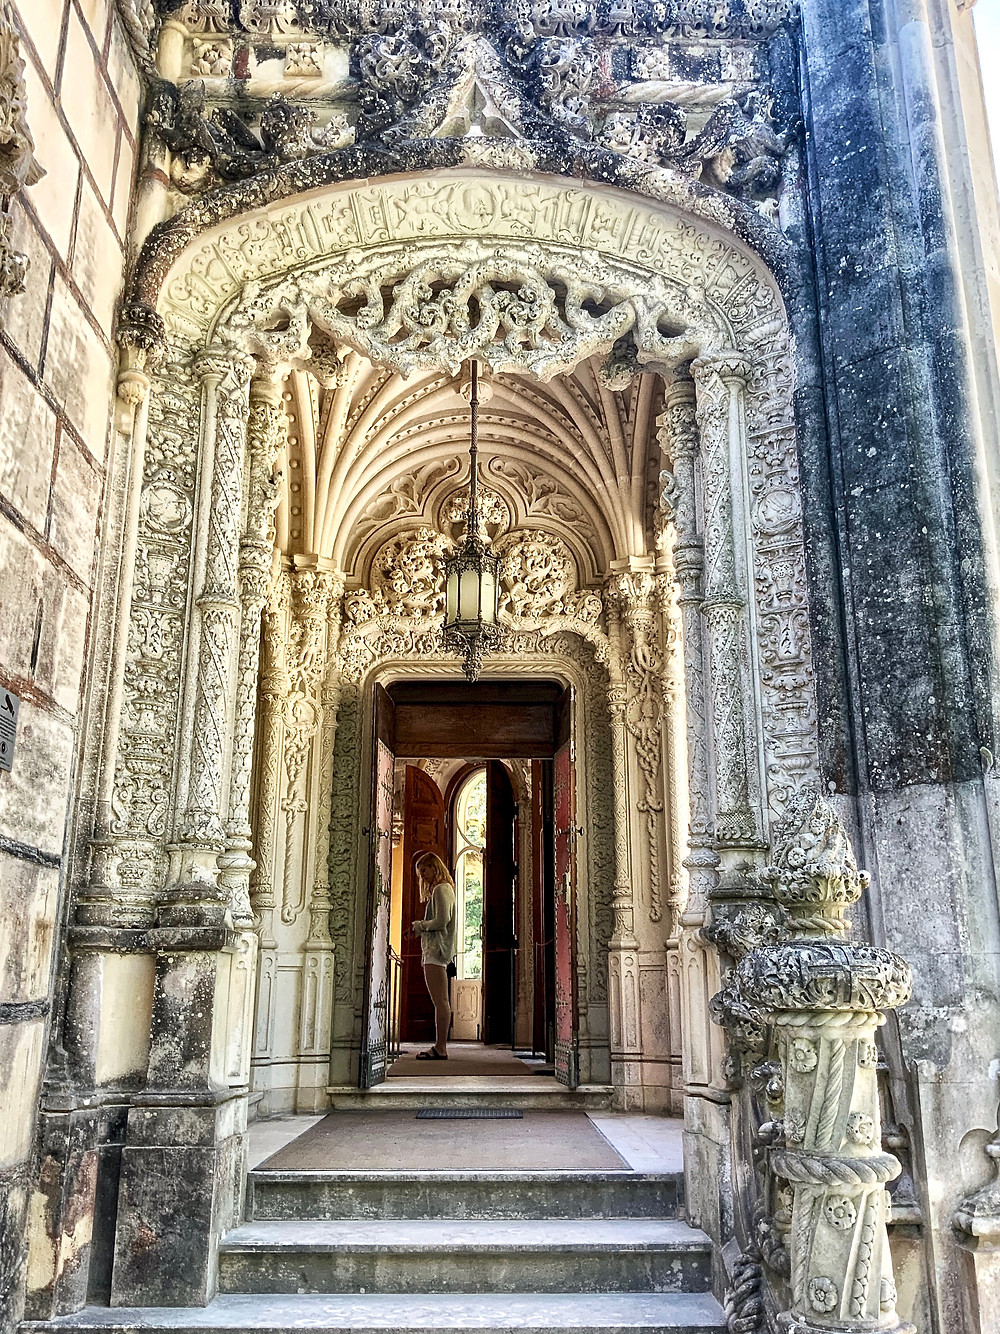 the grand entrance to Quinta de Regaleira palace